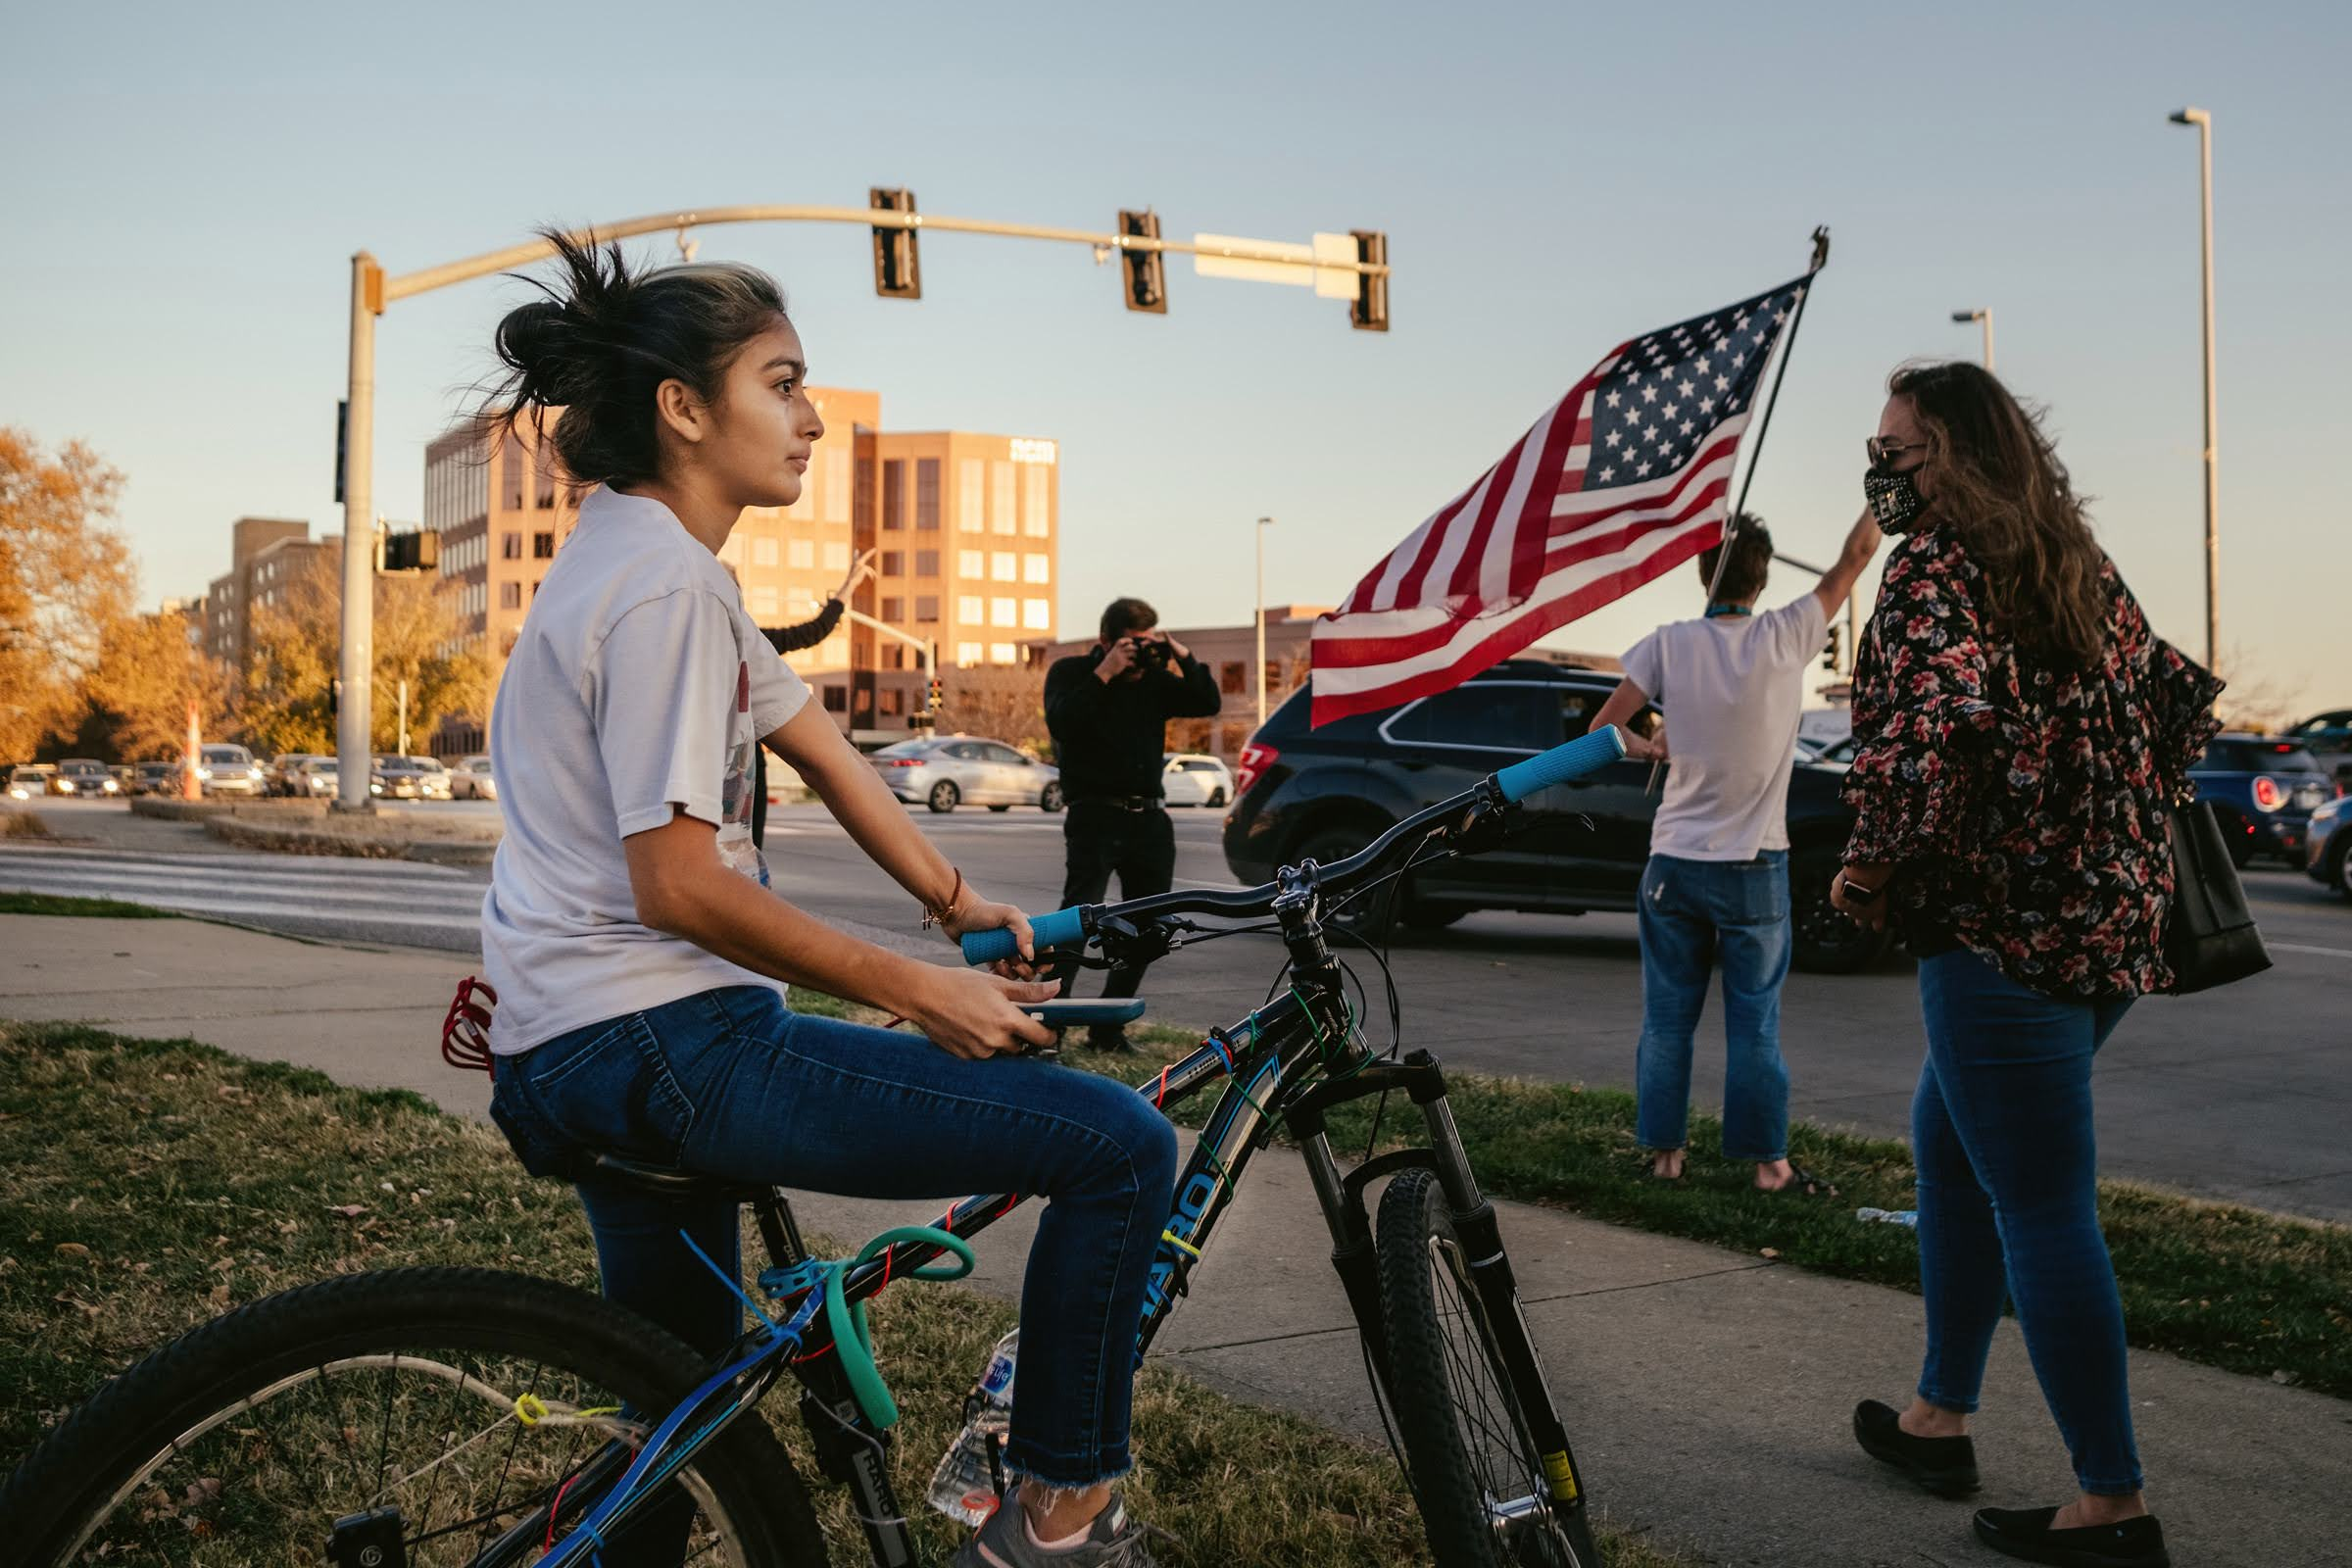 A celebration attendee looks on quietly from their bike as others wave flags, dance, and celebrate the Biden-Harris victory. Chase Castor/The Beacon